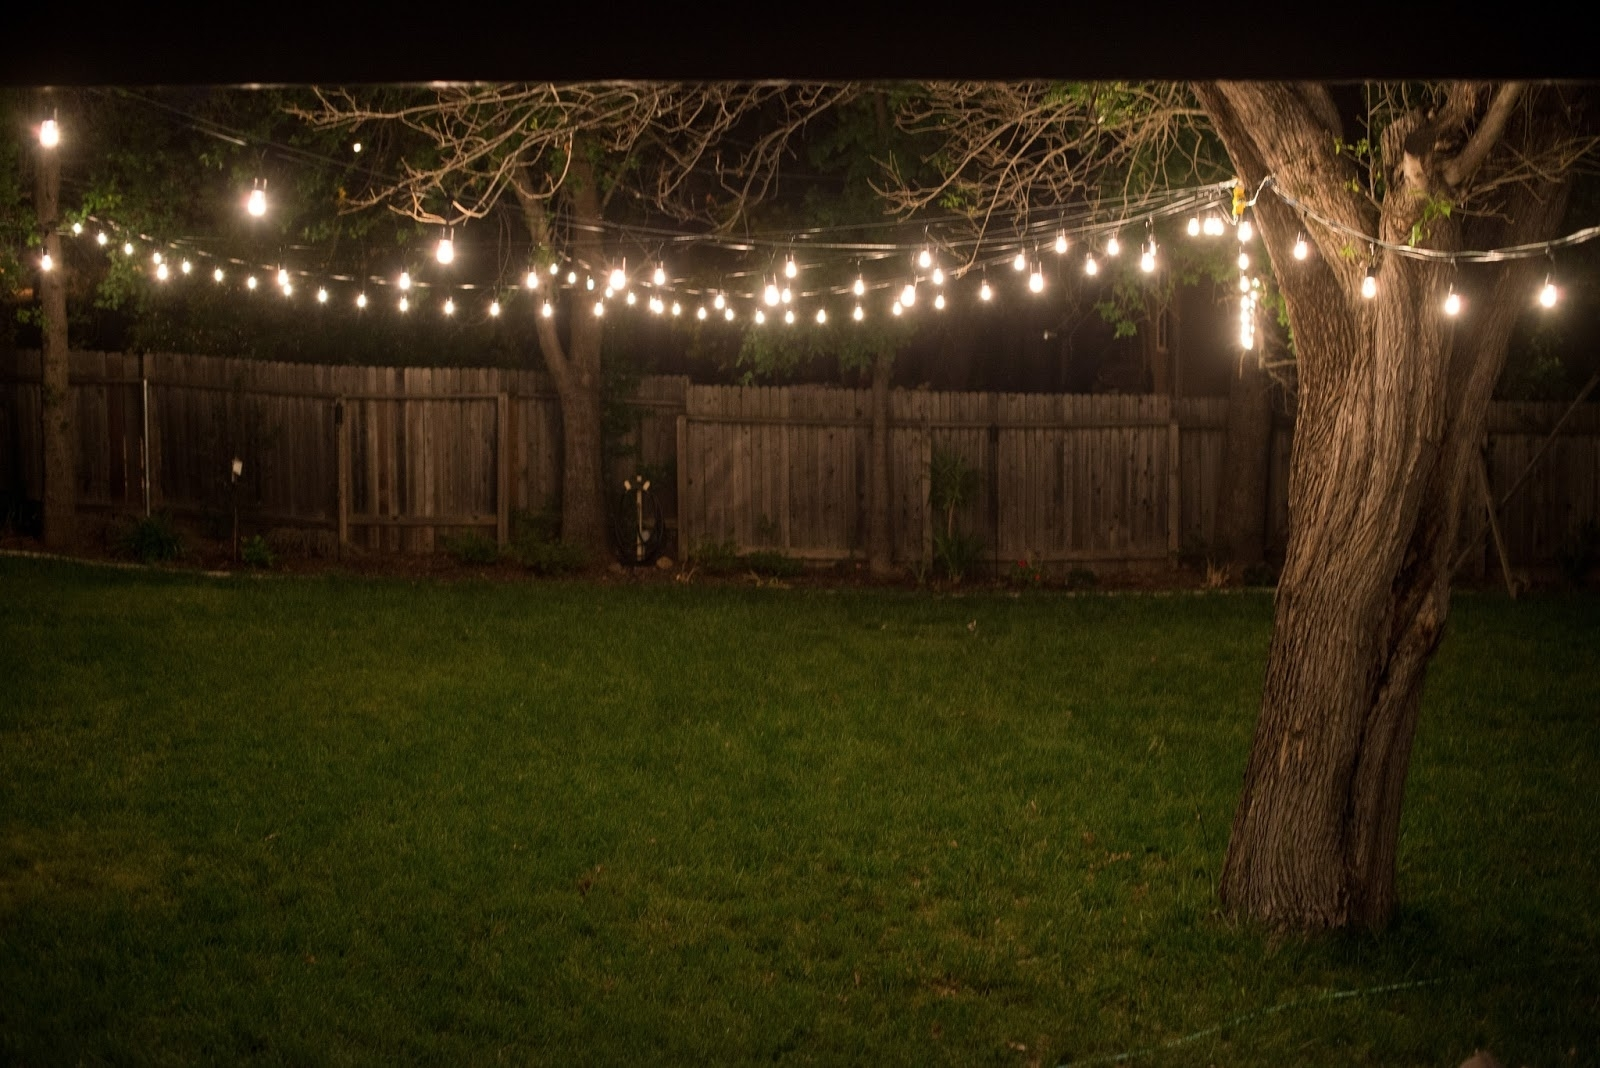 Outdoor Hanging Wall Lights With Regard To Most Up To Date Hanging String Lights Outdoors Amazing Patio Bright July Diy Outdoor (View 10 of 20)